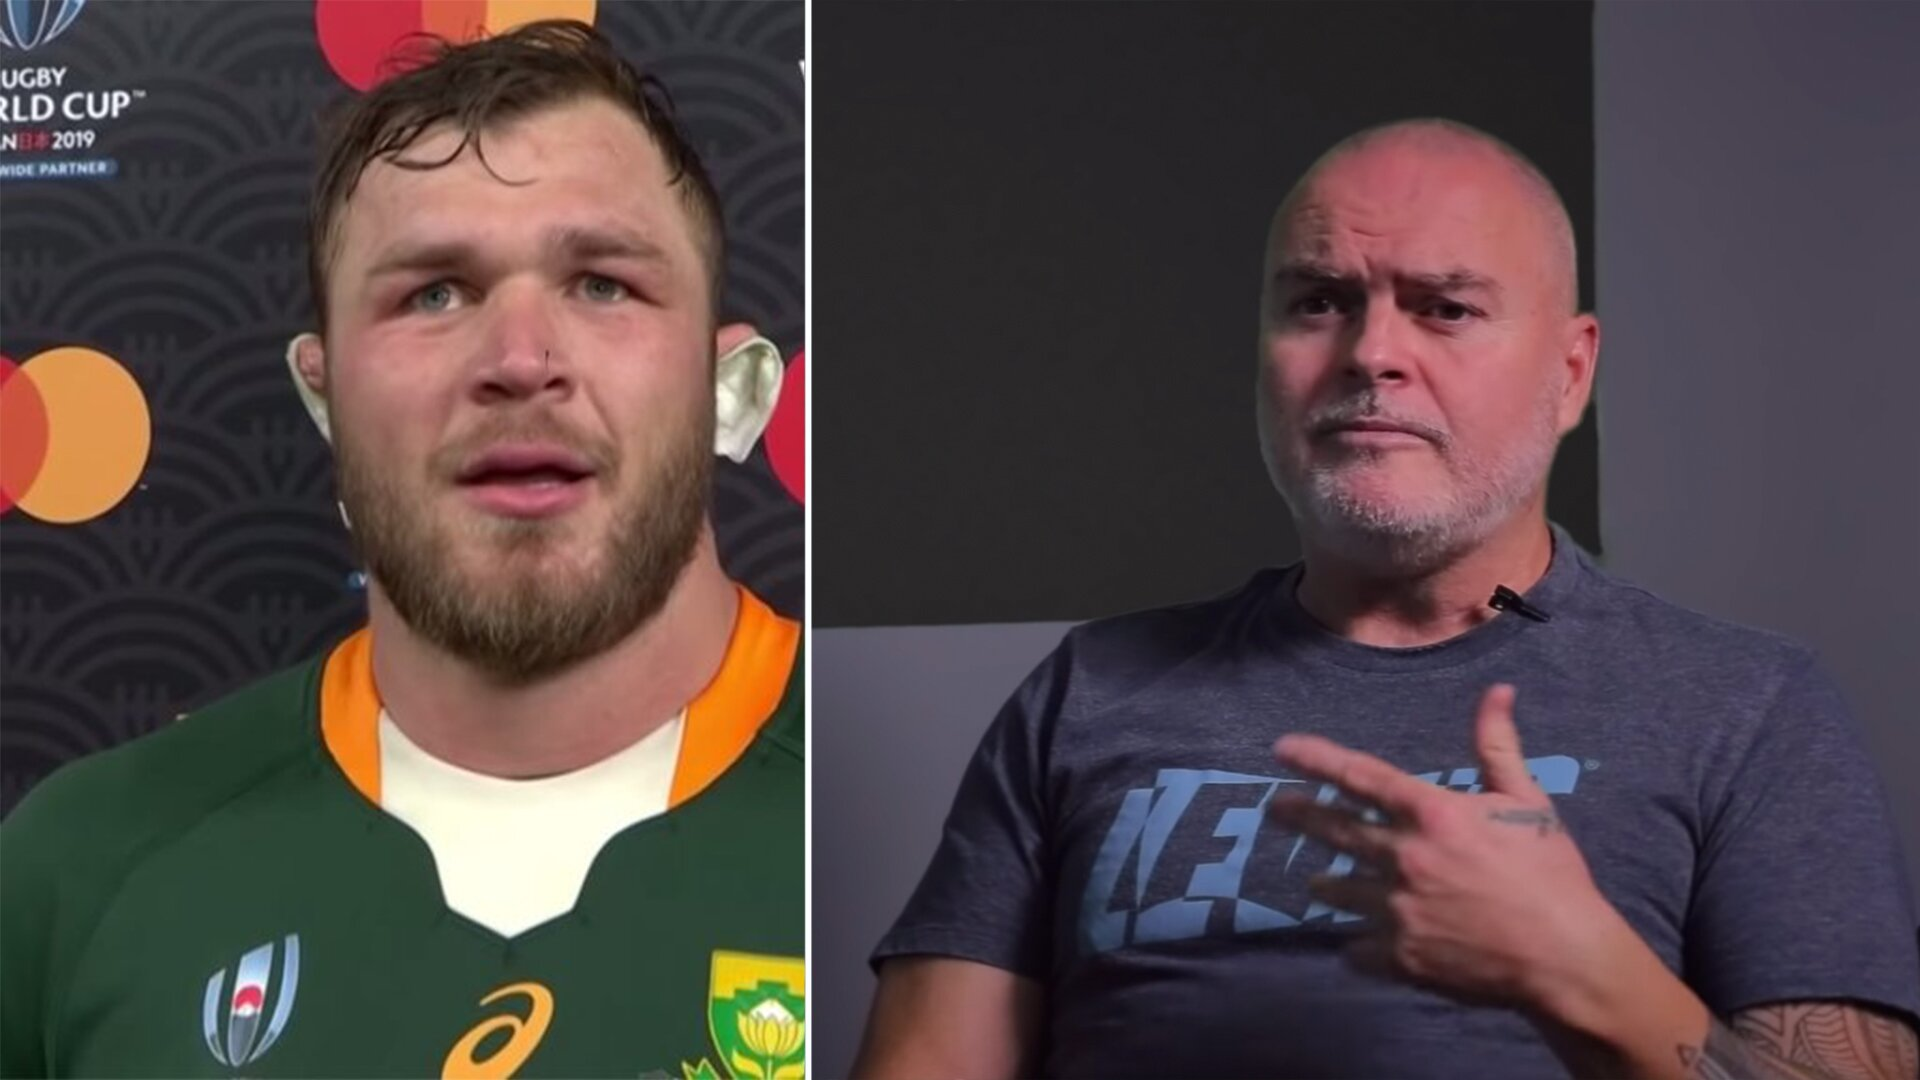 Expert honestly predicts that Springboks will get humiliated in Rugby Championship